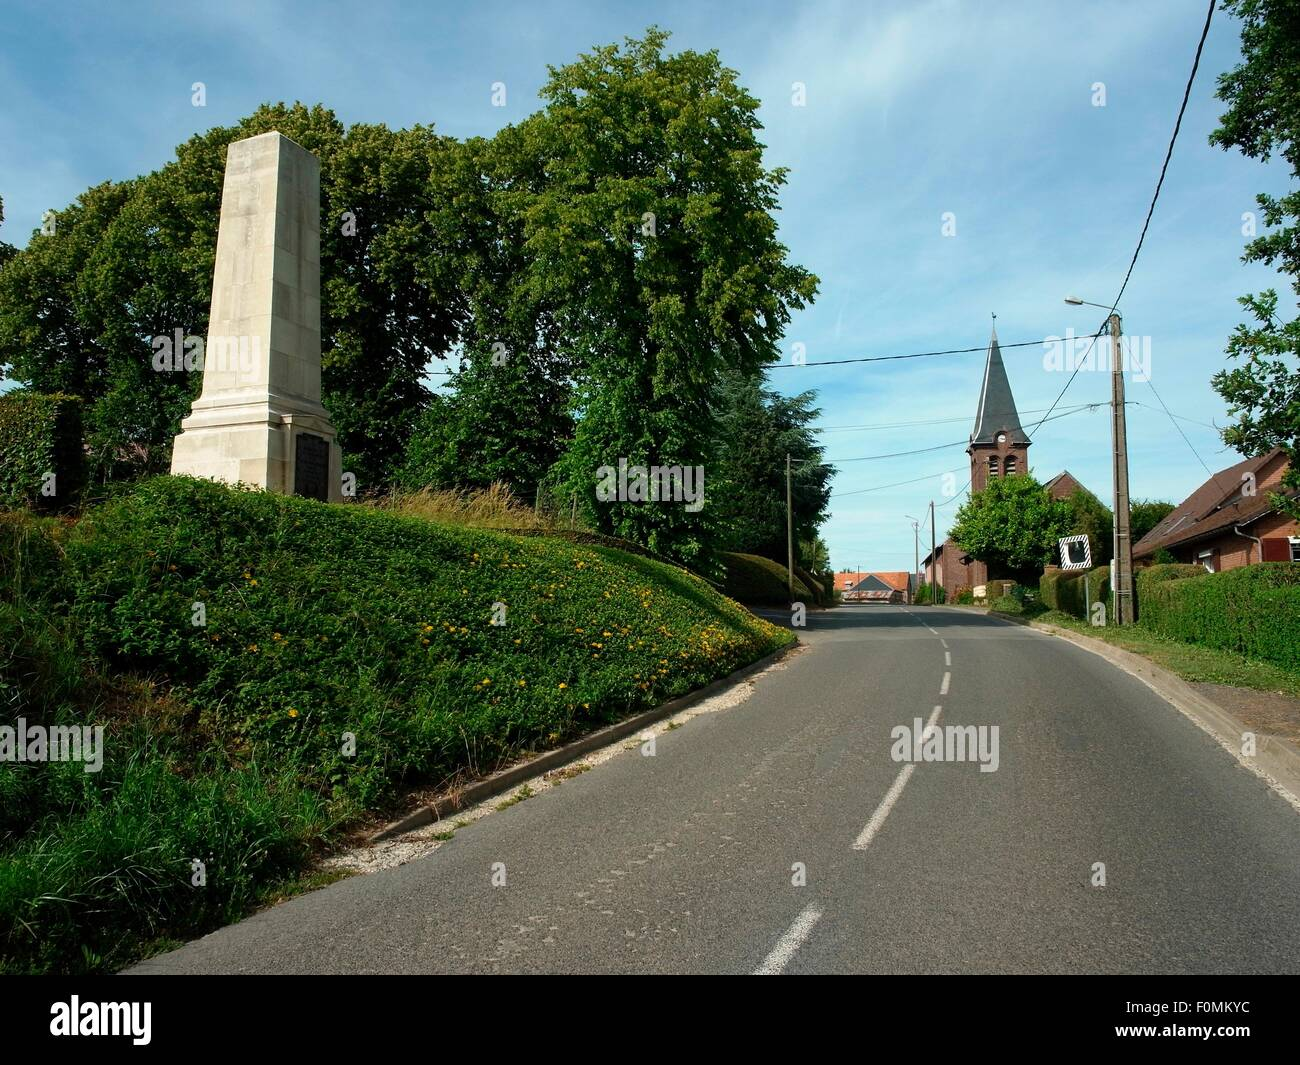 AJAXNETPHOTO -  2015. BEAUCOURT HAMEL, FRANCE. - (LEFT) MONUMENT IN THE VILLAGE OVERLOOKING THE ANCRE VALLEY TO Stock Photo